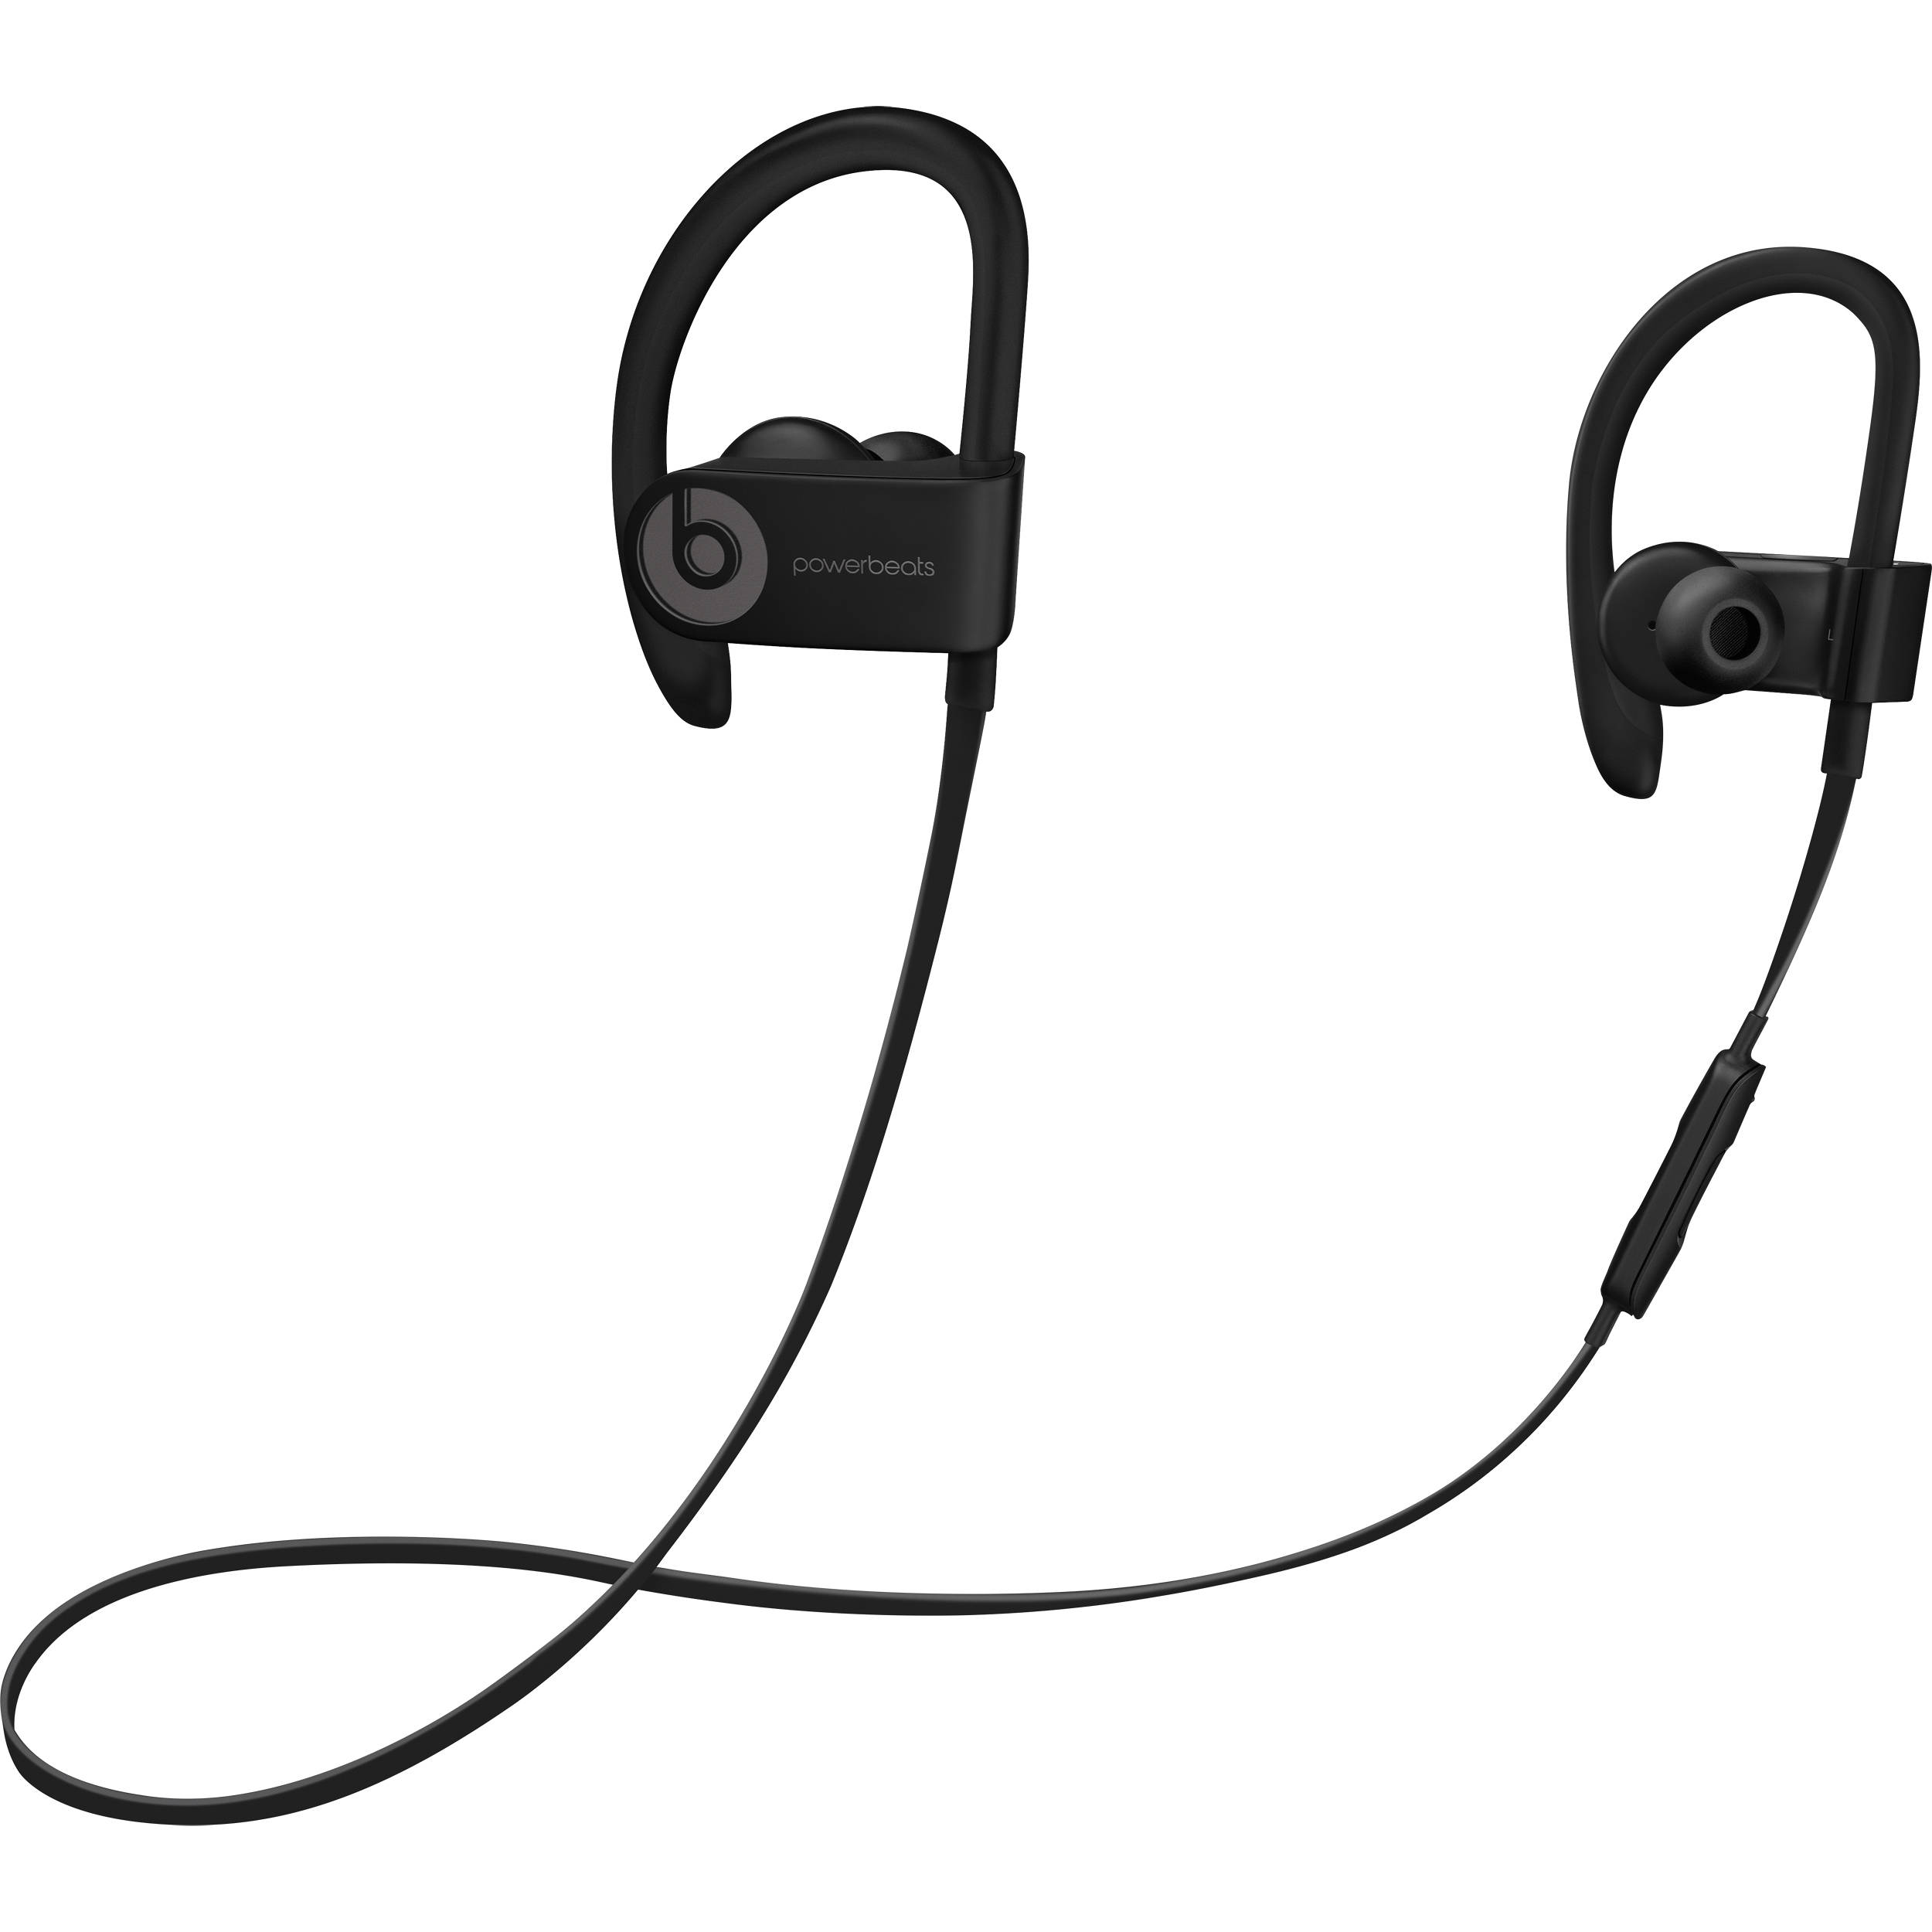 4dcdca718f4 beats_by_dr_dre_ml8v2ll_a_powerbeats3_in_ear_headphones_black_1280790.jpg